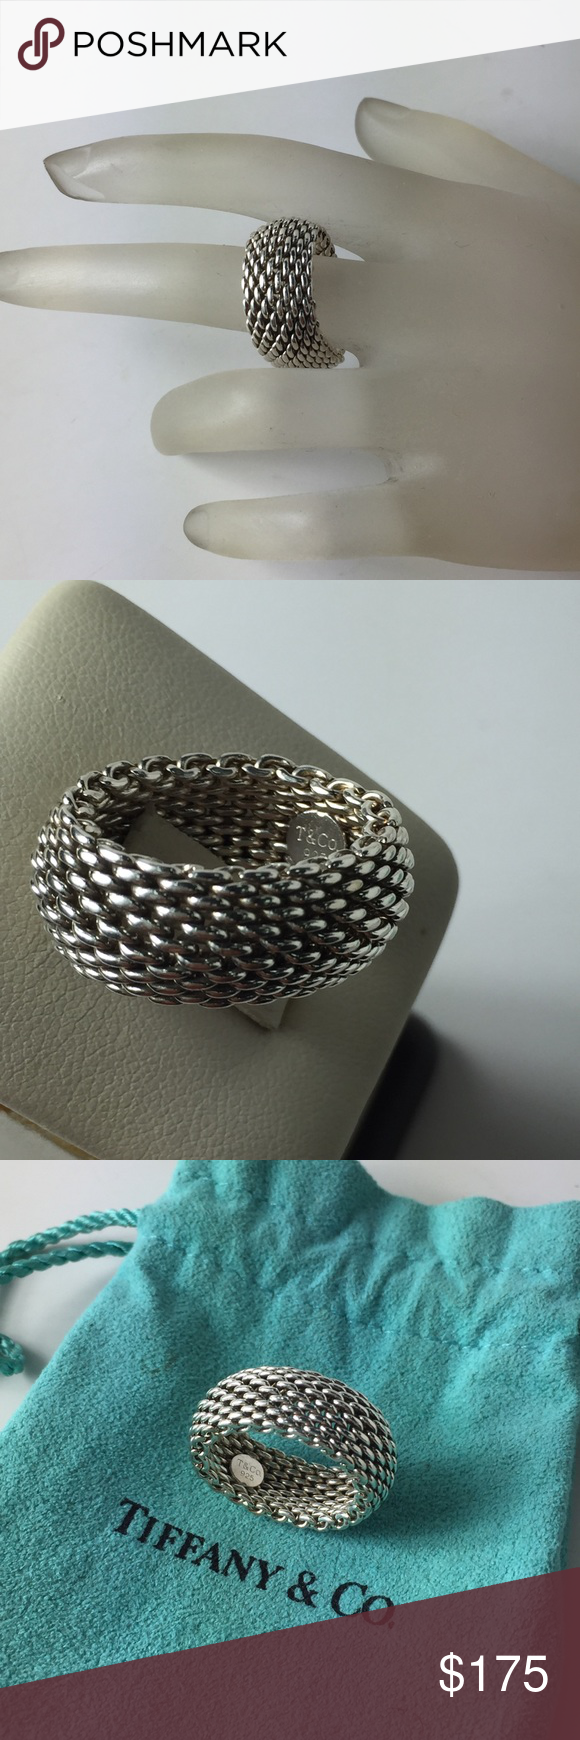 6a6396903ca17 T&C Somerset ring Tiffany & Co Somerset mesh ring weights 9.2 grams ...